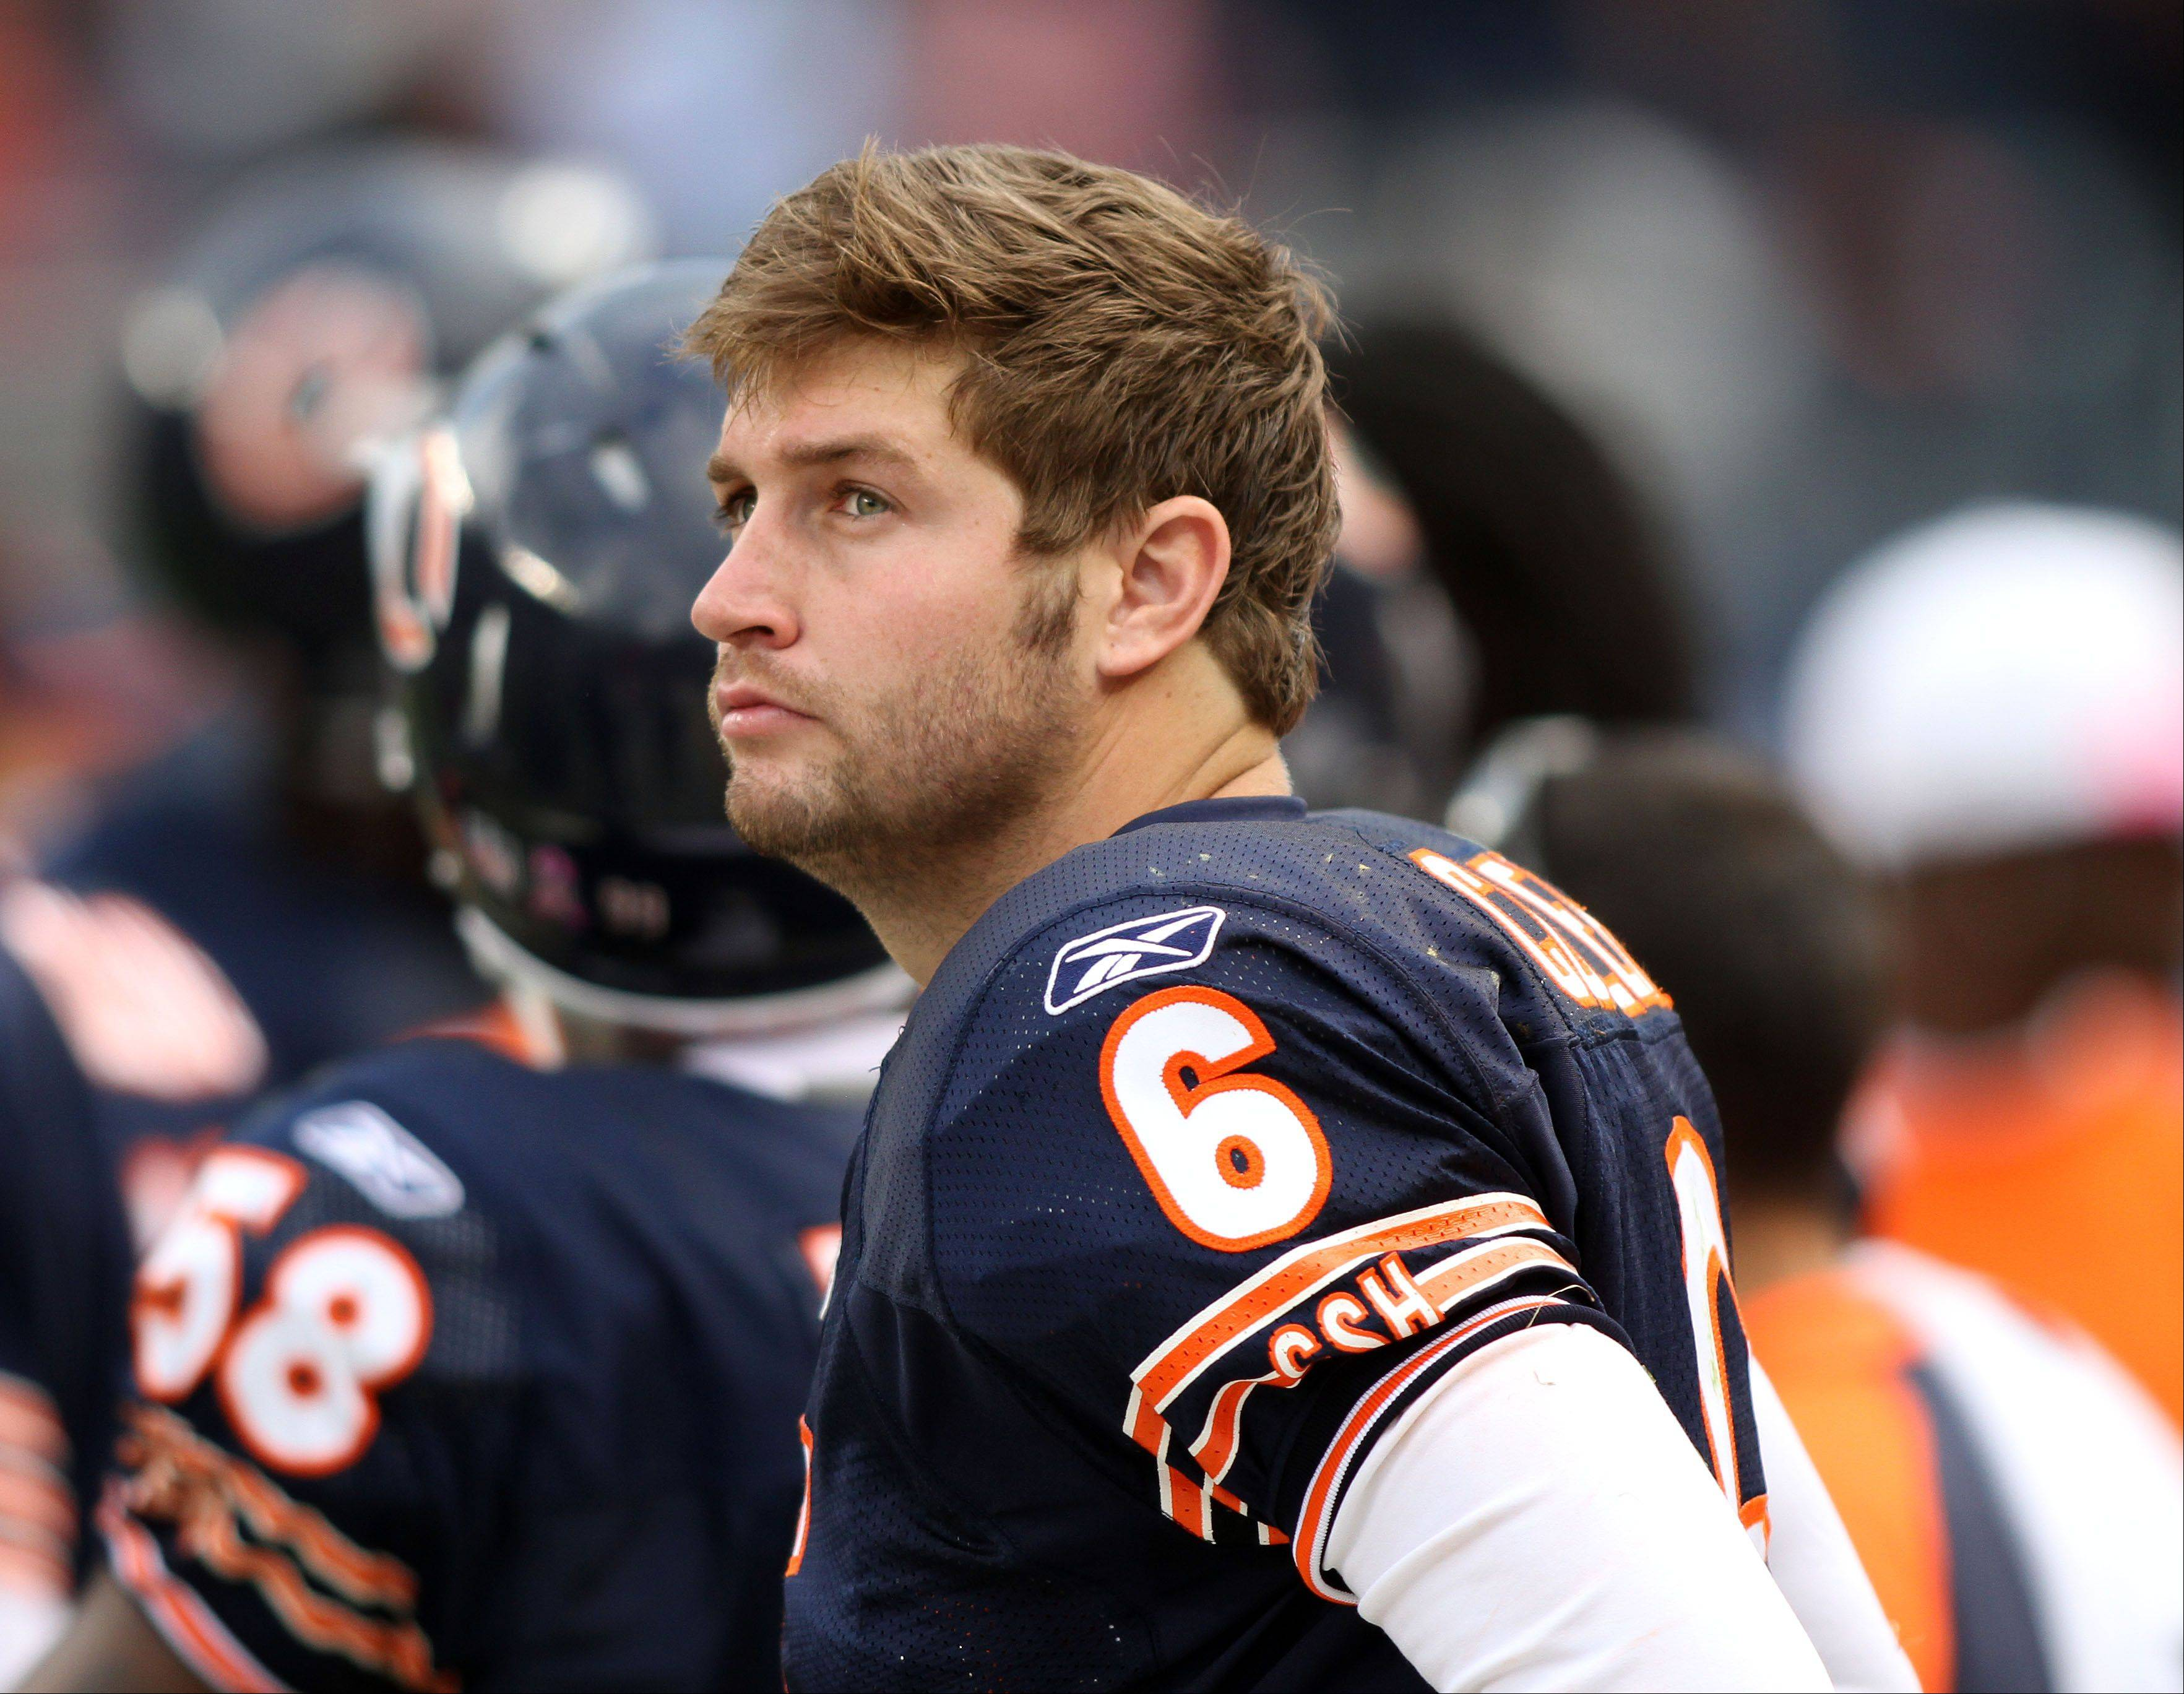 Chicago Bears quarterback Jay Cutler has yet to practice but says he feels like he�s going to be back on the field soon. �I want to play. There�s no doubt about it,� Cutler says. �It�s just the trainers and the doctors and going through the scenario we have to go through.�